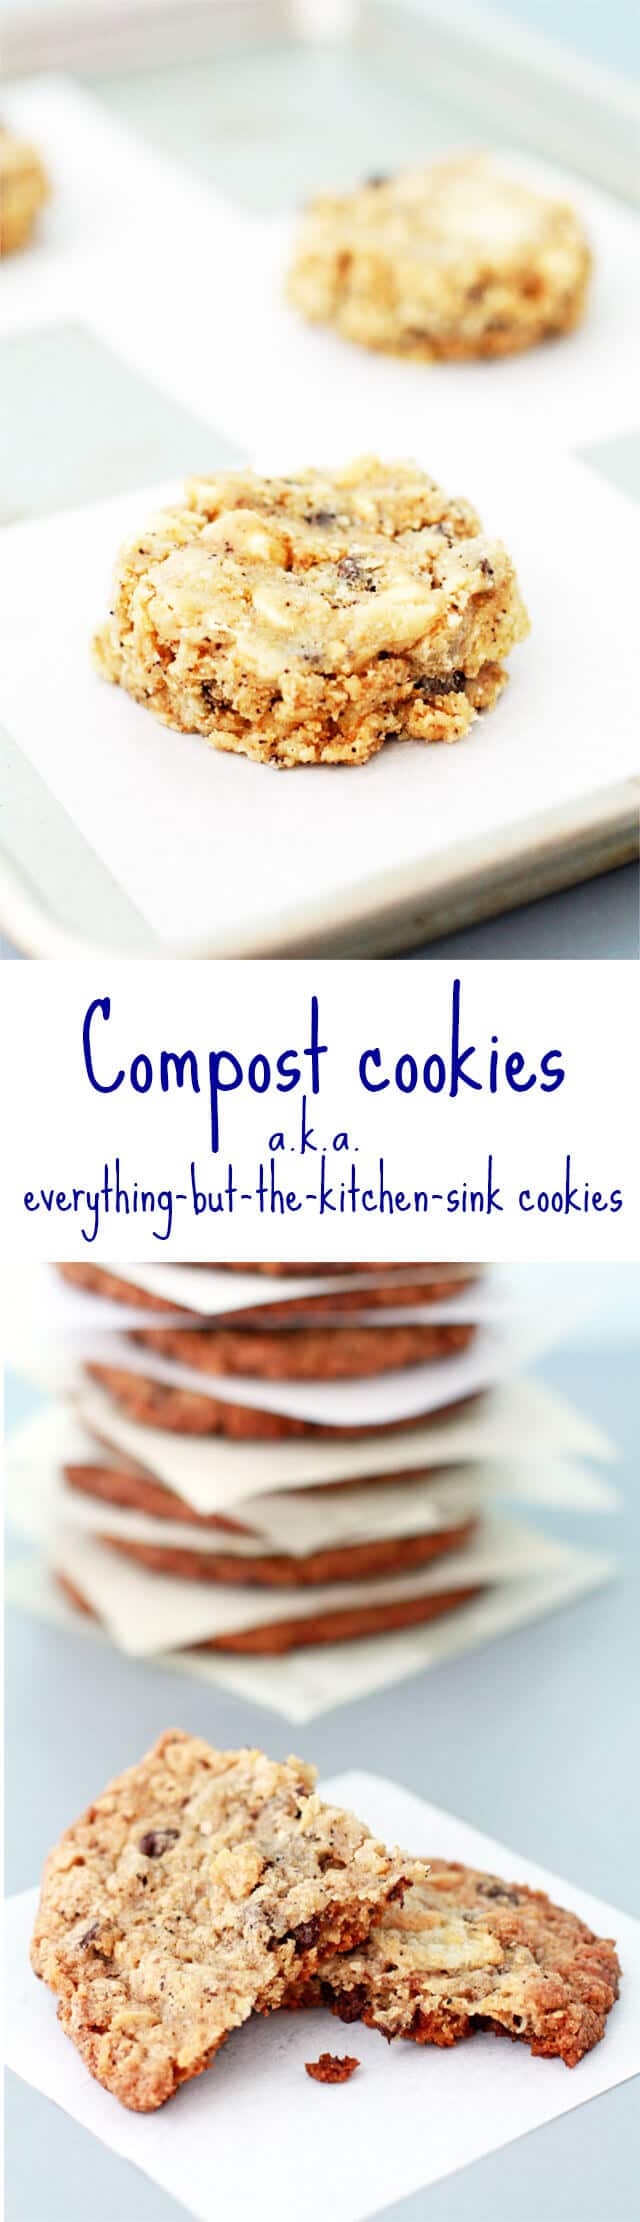 Momofuku Milk bar compost cookies recipe like everything cookies also know everything but the kitchen sink cookies recipe with potato chips, chocolate chips, graham crackers, and coffee grinds